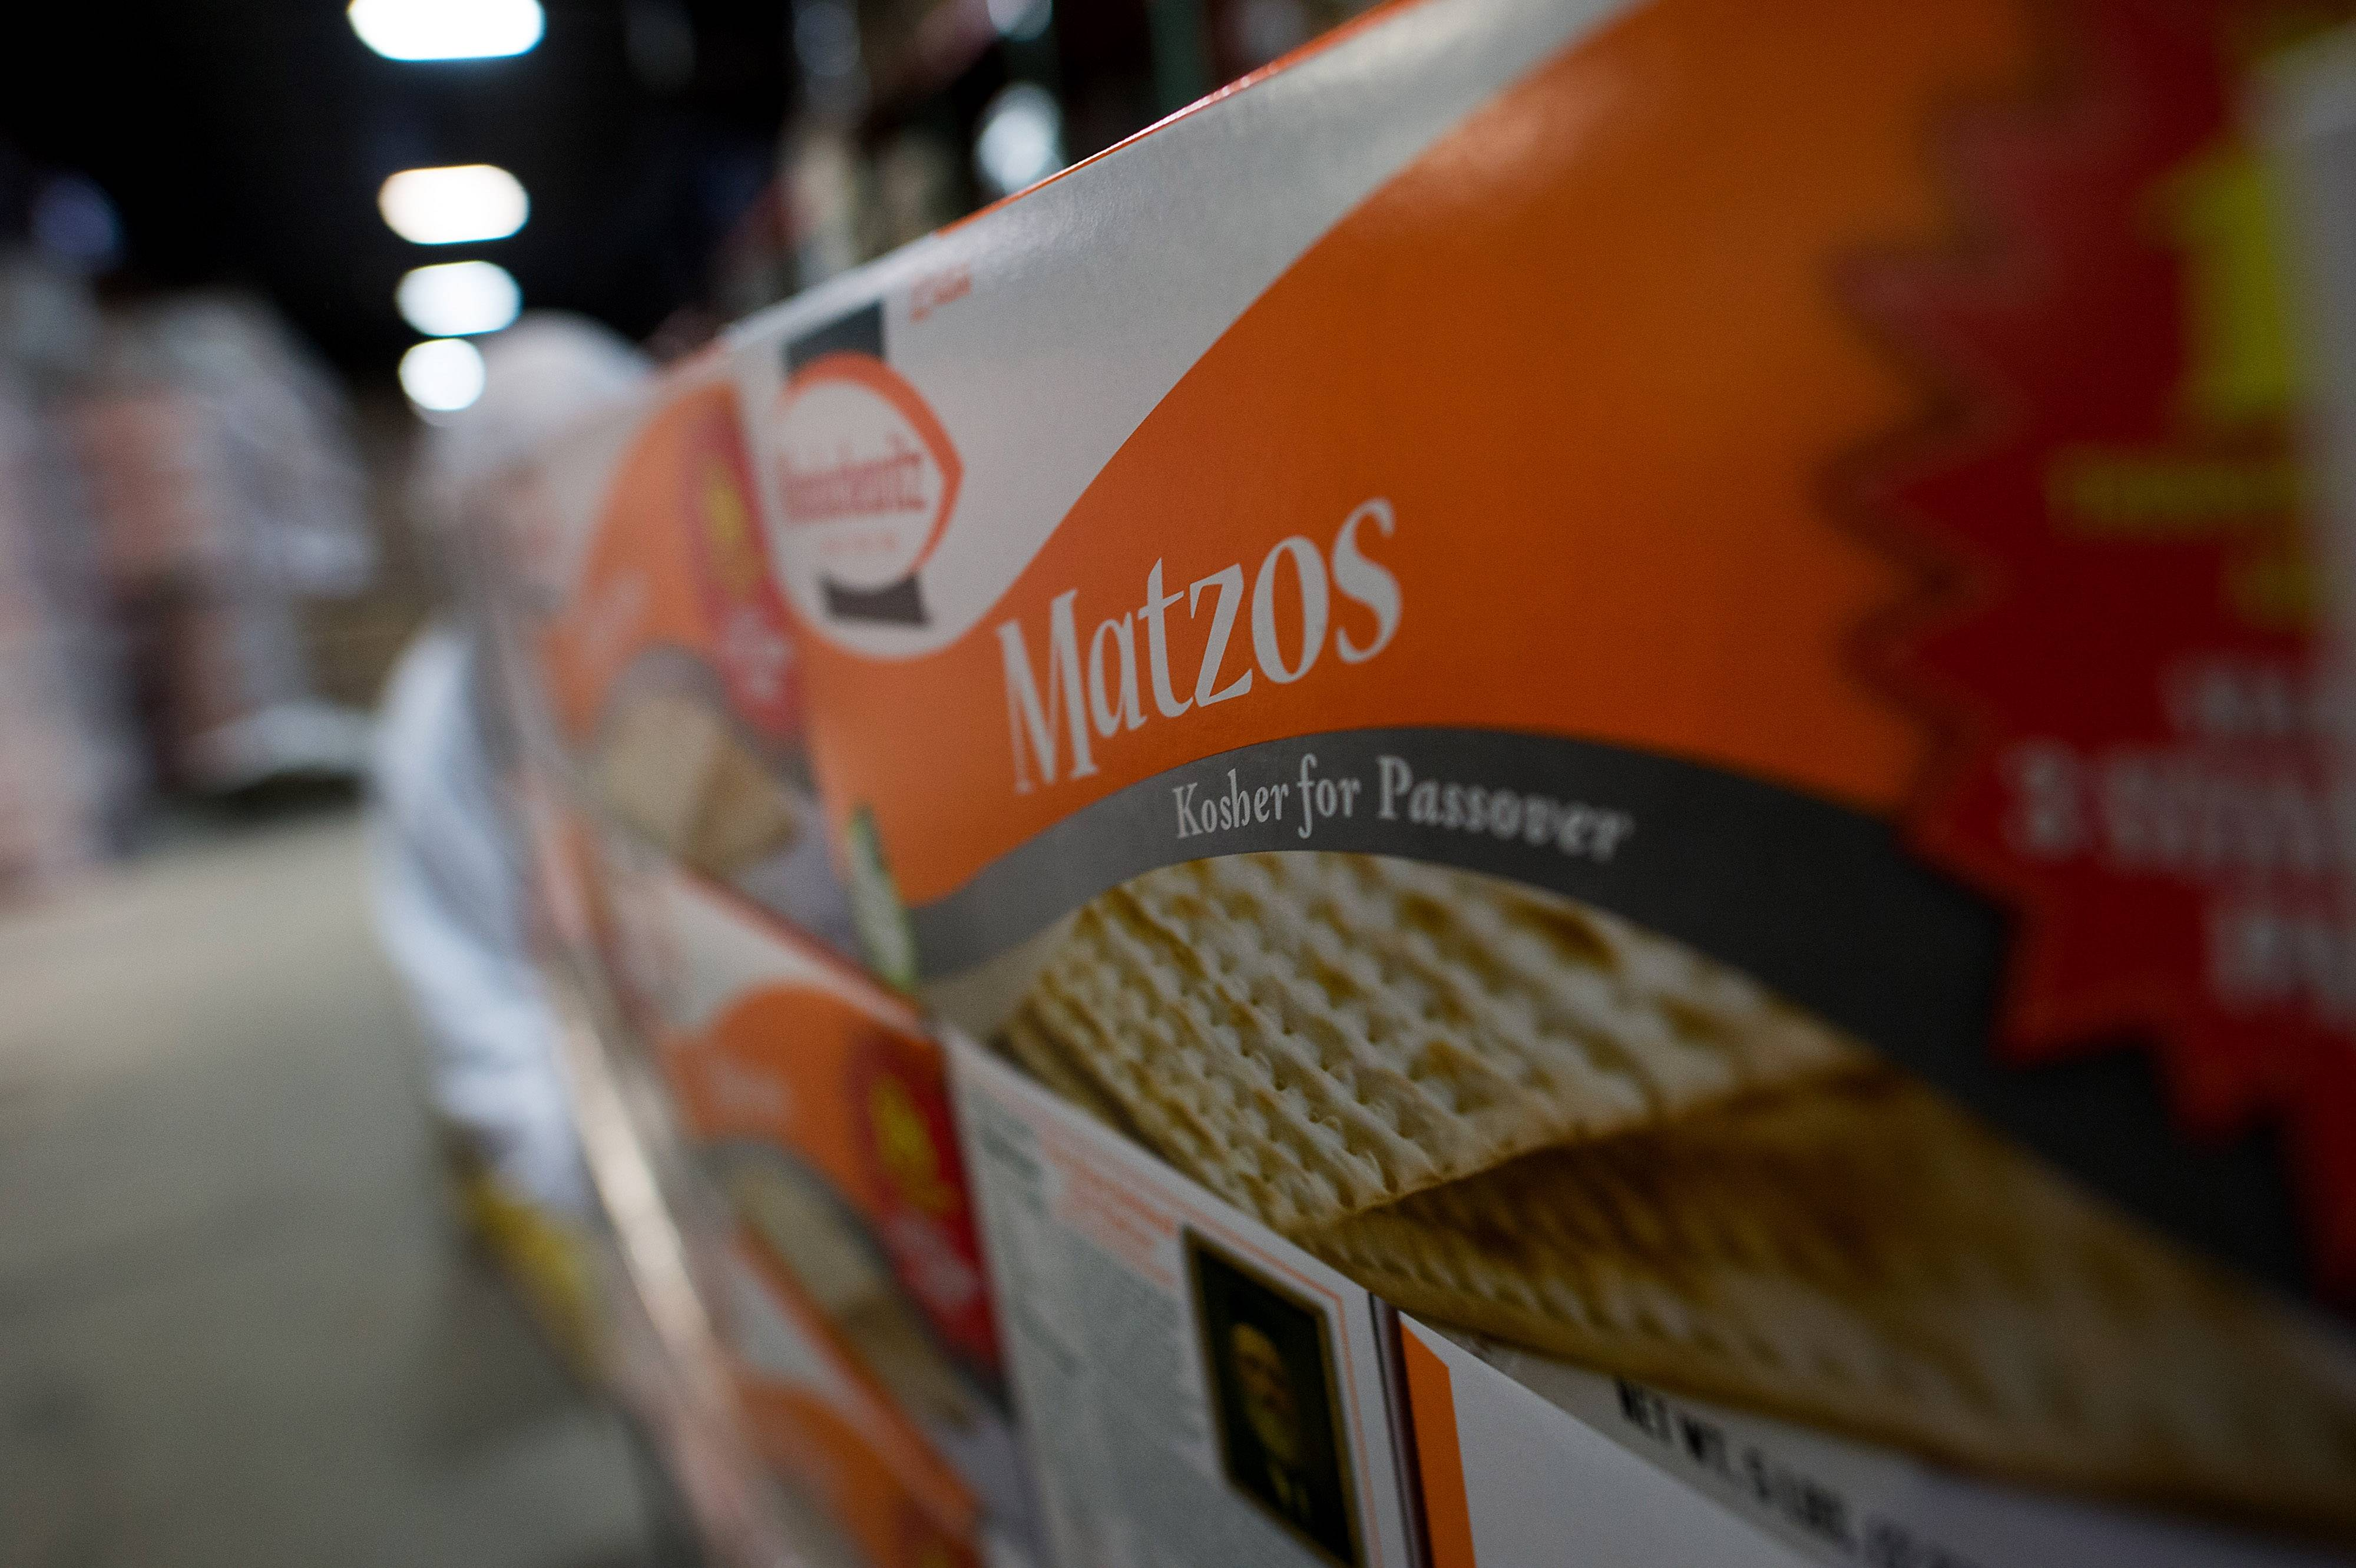 Matzo and kosher wine maker Manischewitz has been sold, just in time for the Passover Seder meal.